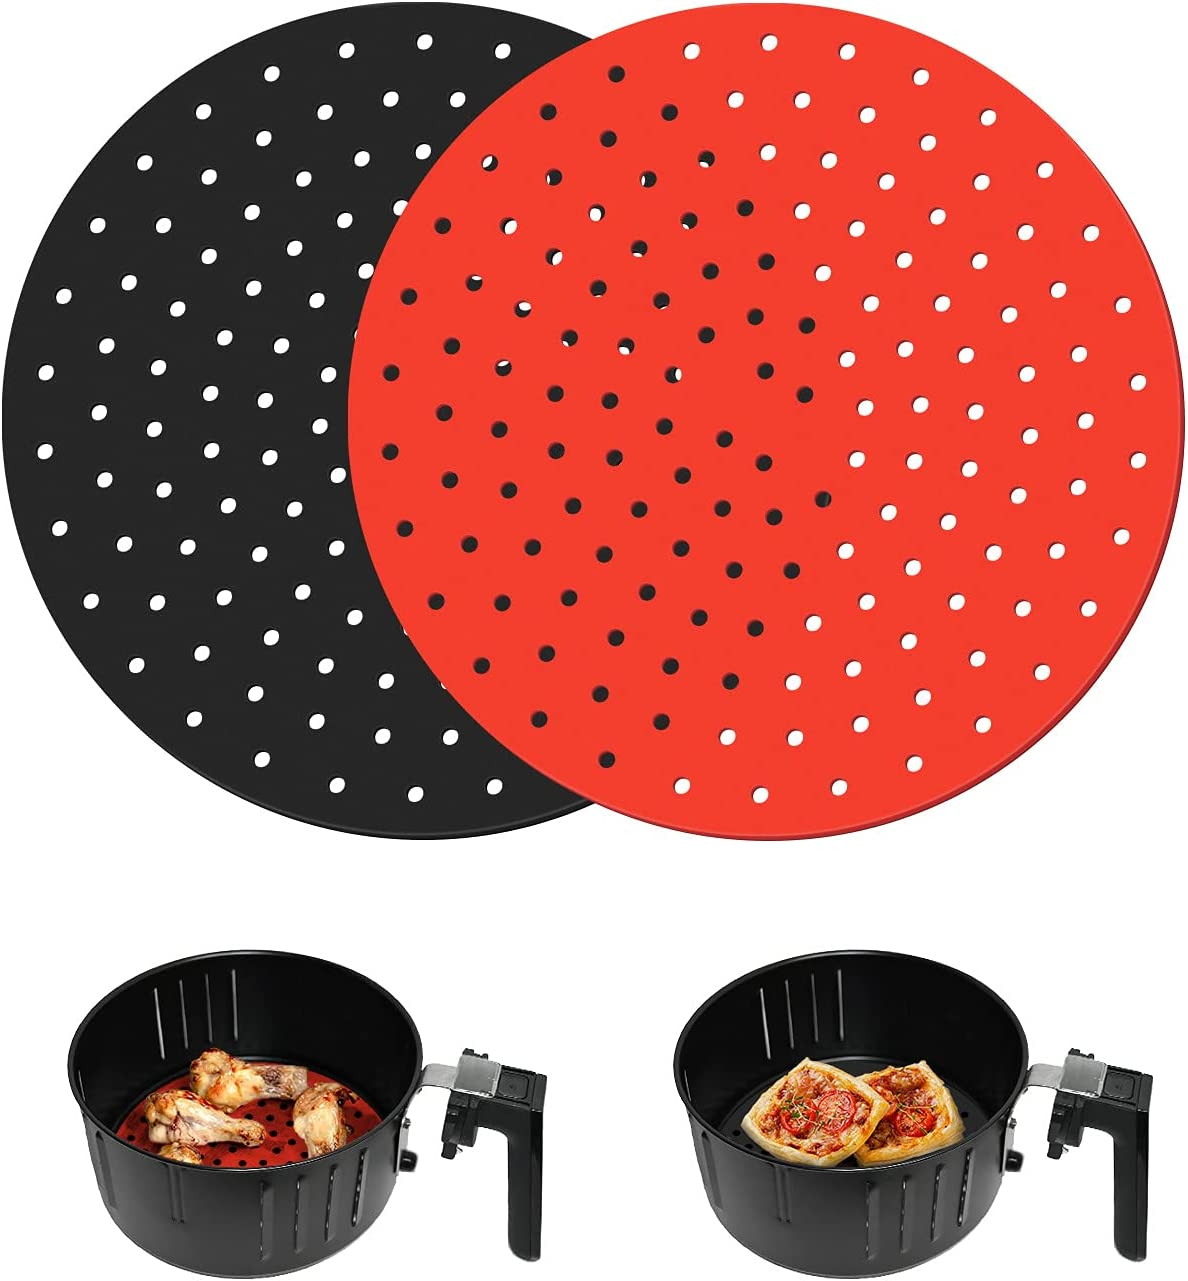 Reusable Air Fryer Liners, 9-Inch Round Silicone Air Fryer Liners, Non-Stick Air Fryer Accessories for NINJA Nuwave Chefman Gourmia Dash and More, Safe Air Fryer Mat, Replace parchment